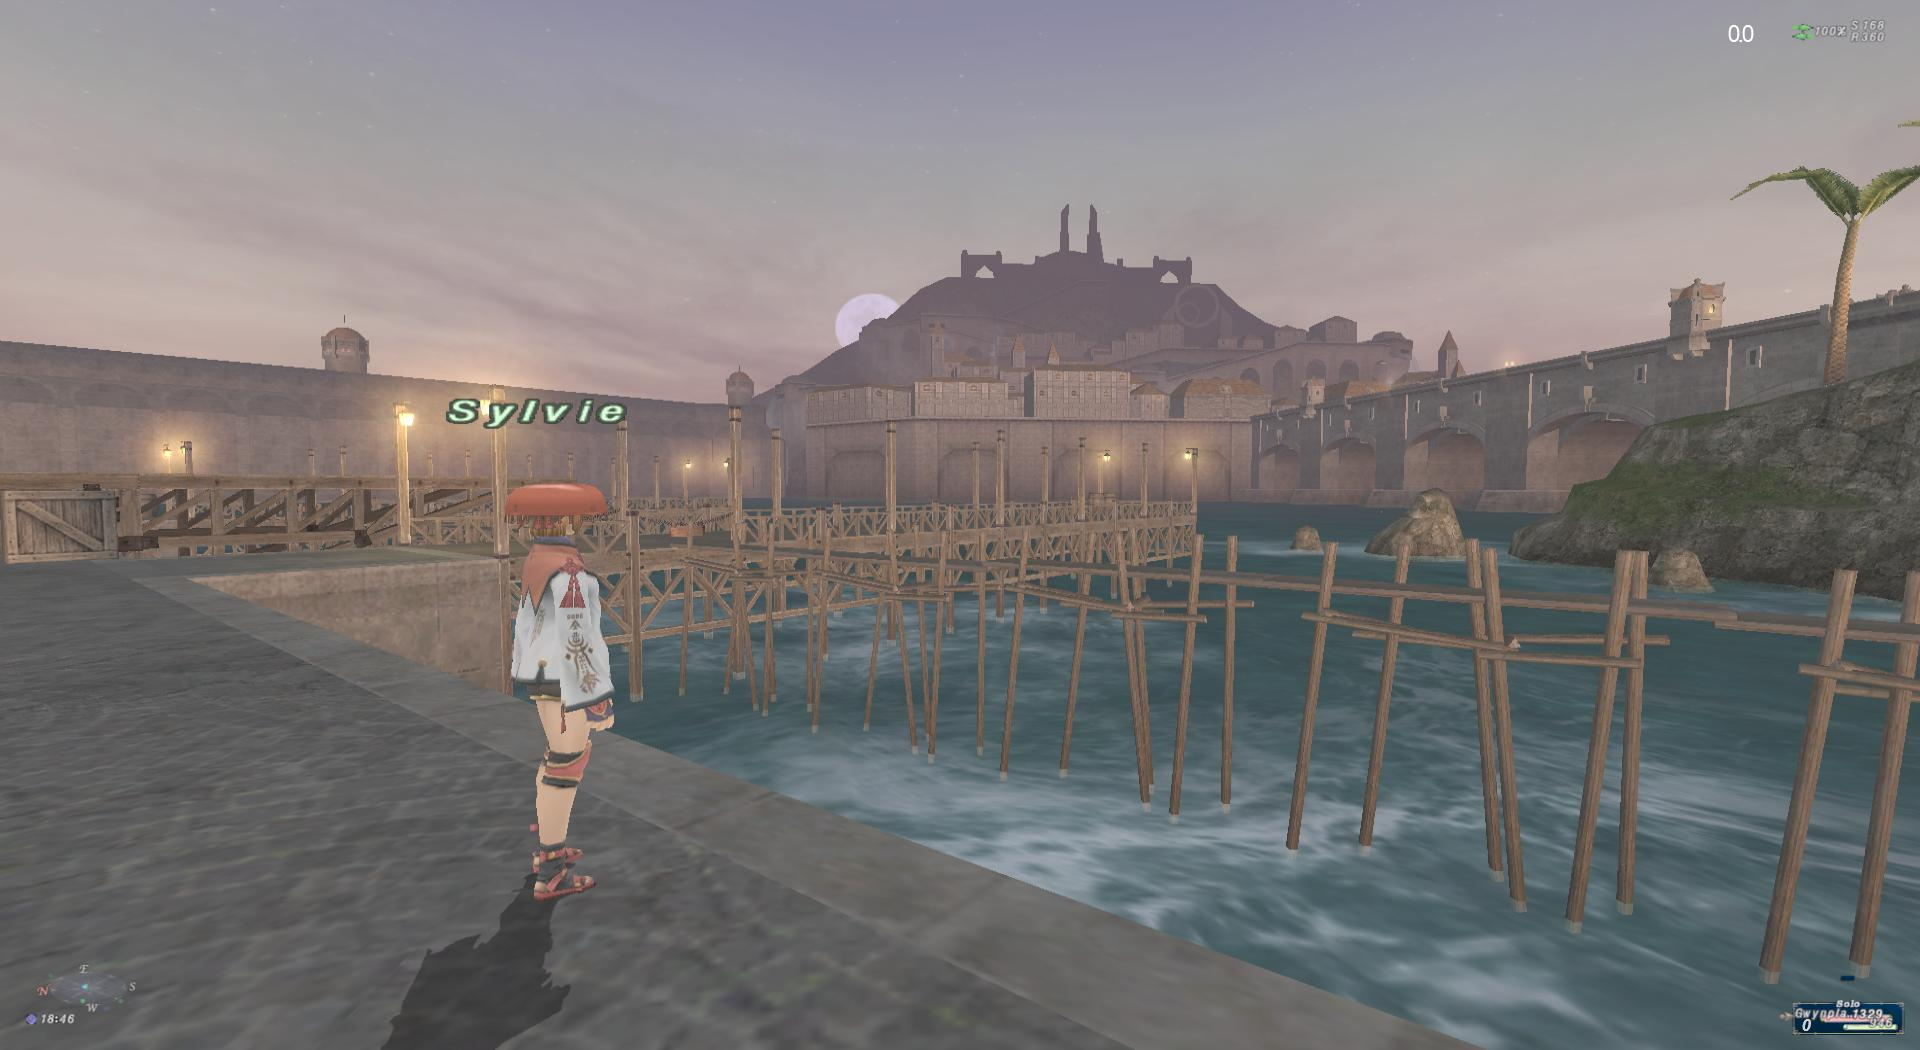 gwynplaine ffxi first tanked fight empires jorm with kurayami died beat that gadr where down definitely keep minority sprit nostalgia always favoritebest lookingfunniest screenshots incoming nidhogg time your khim looong think this